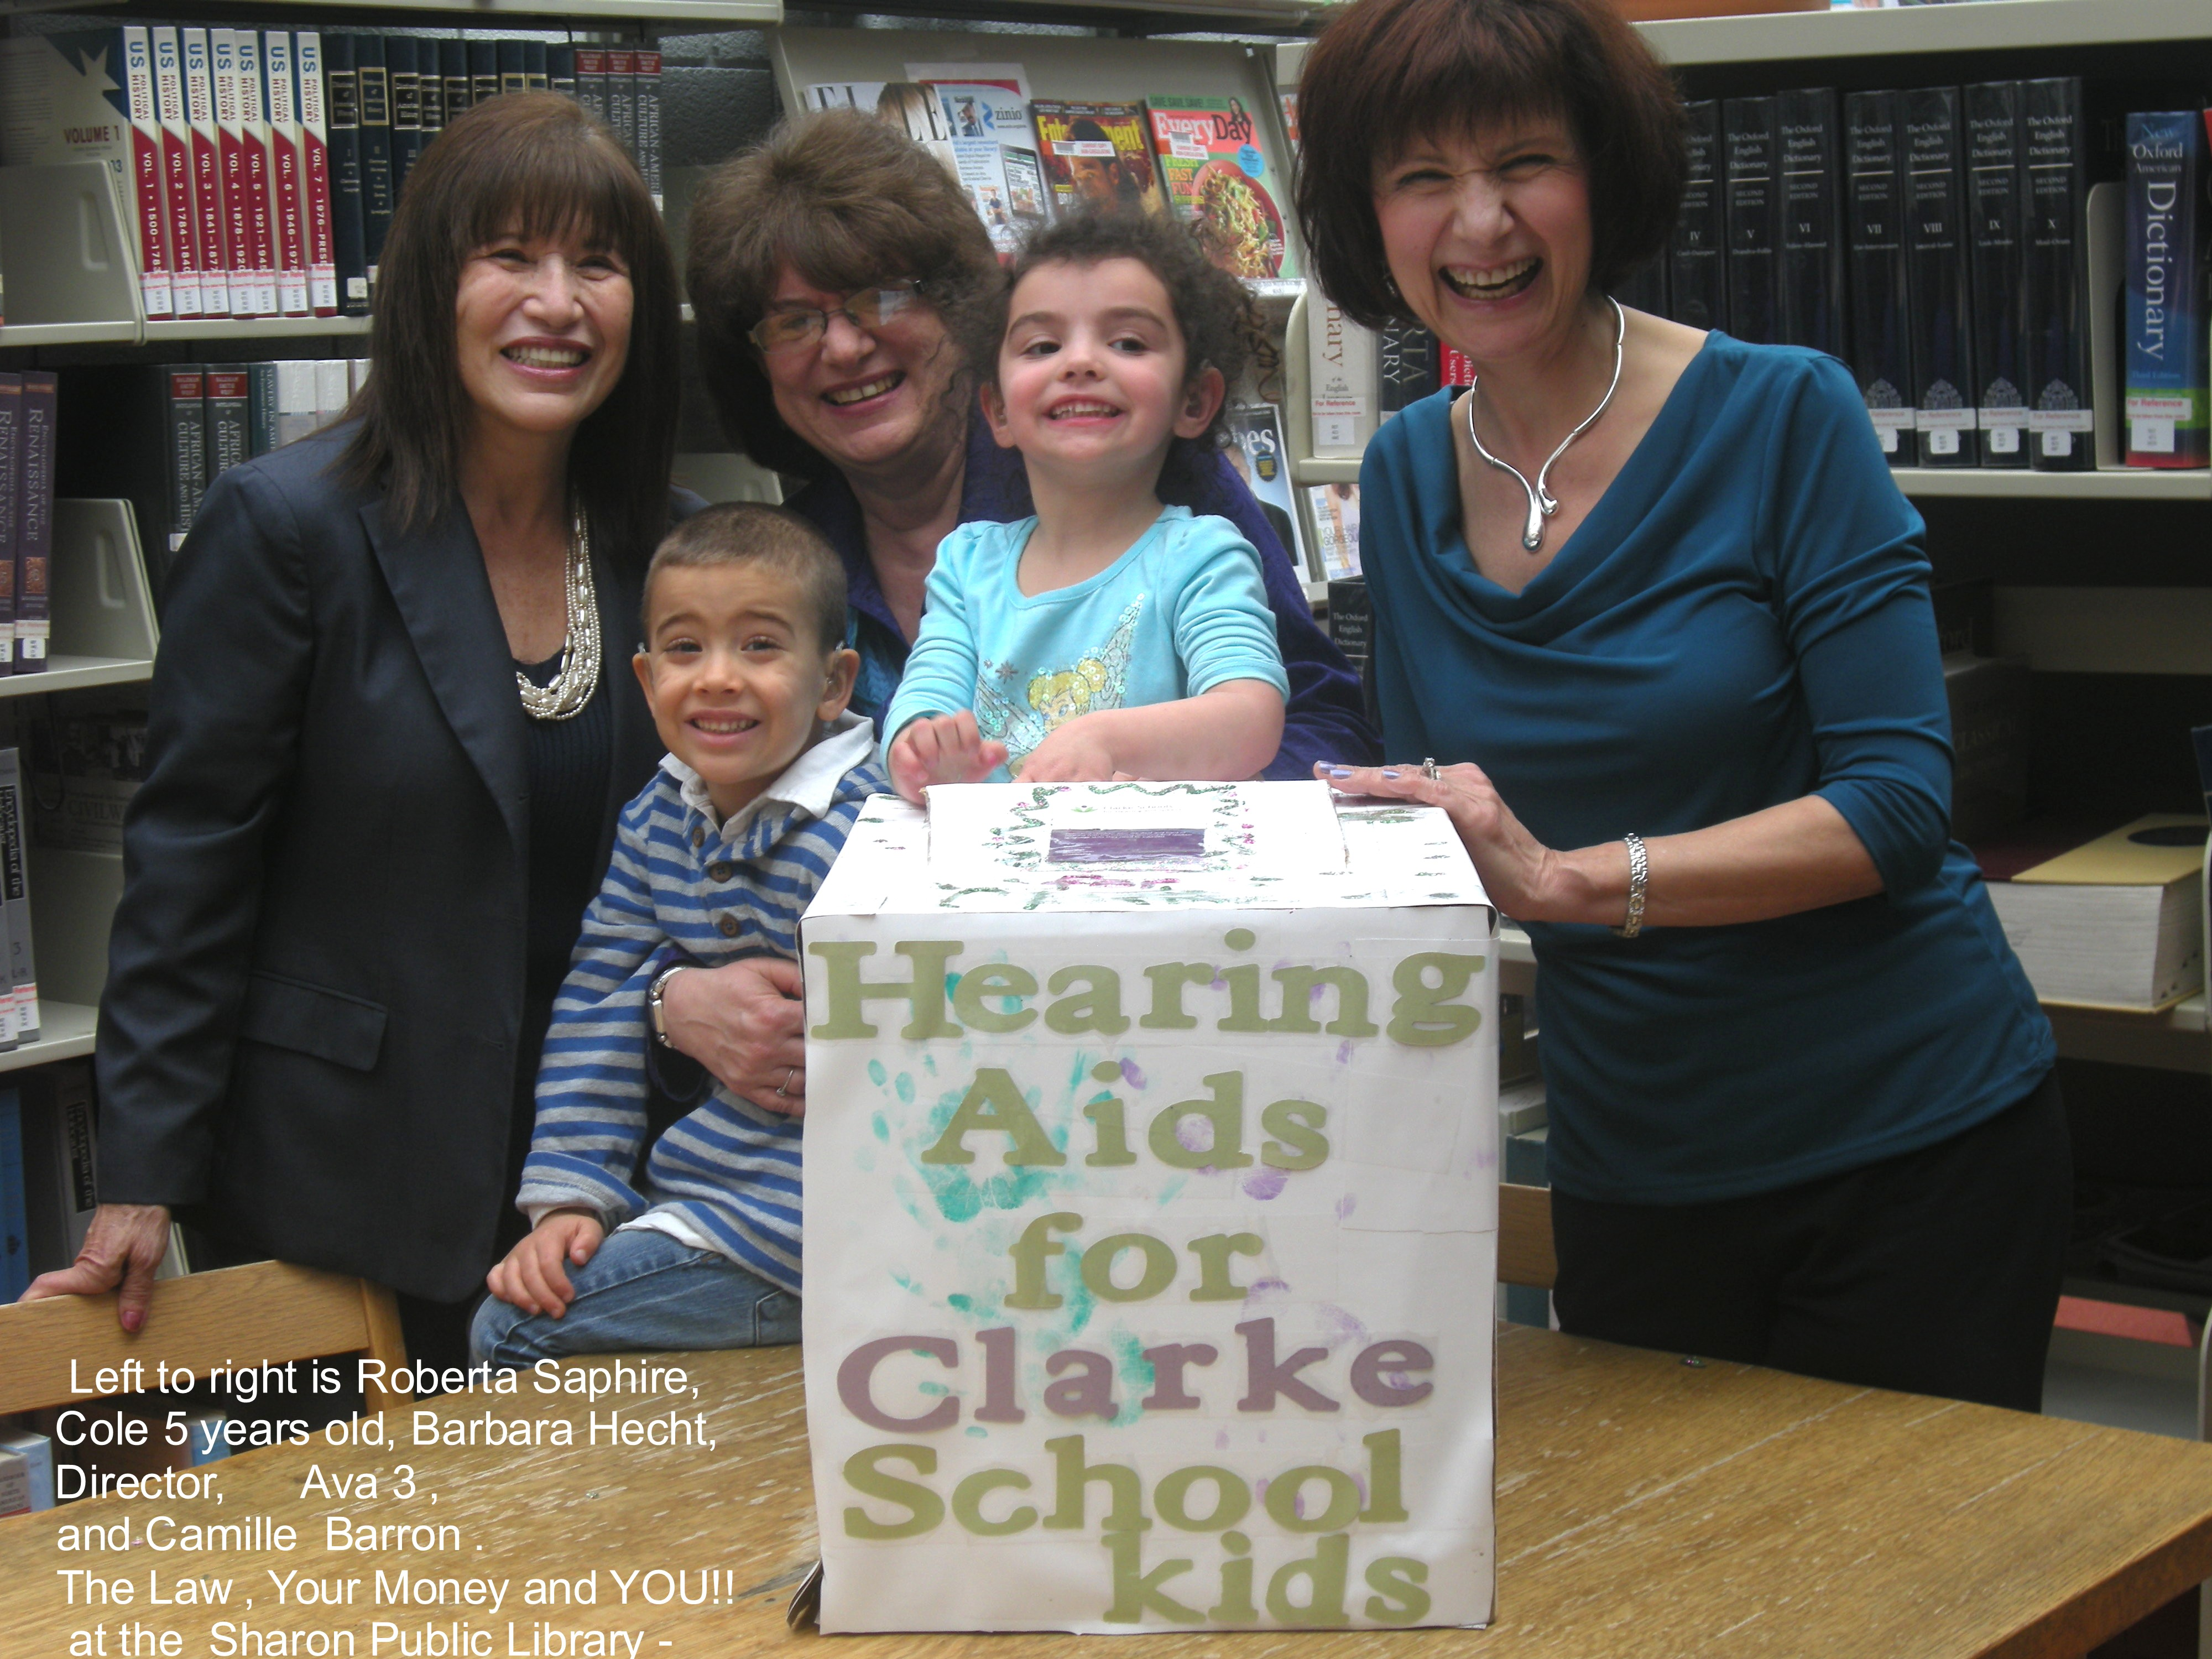 Roberta and Camille standing with Barbara Hecht and students Ava and Cole